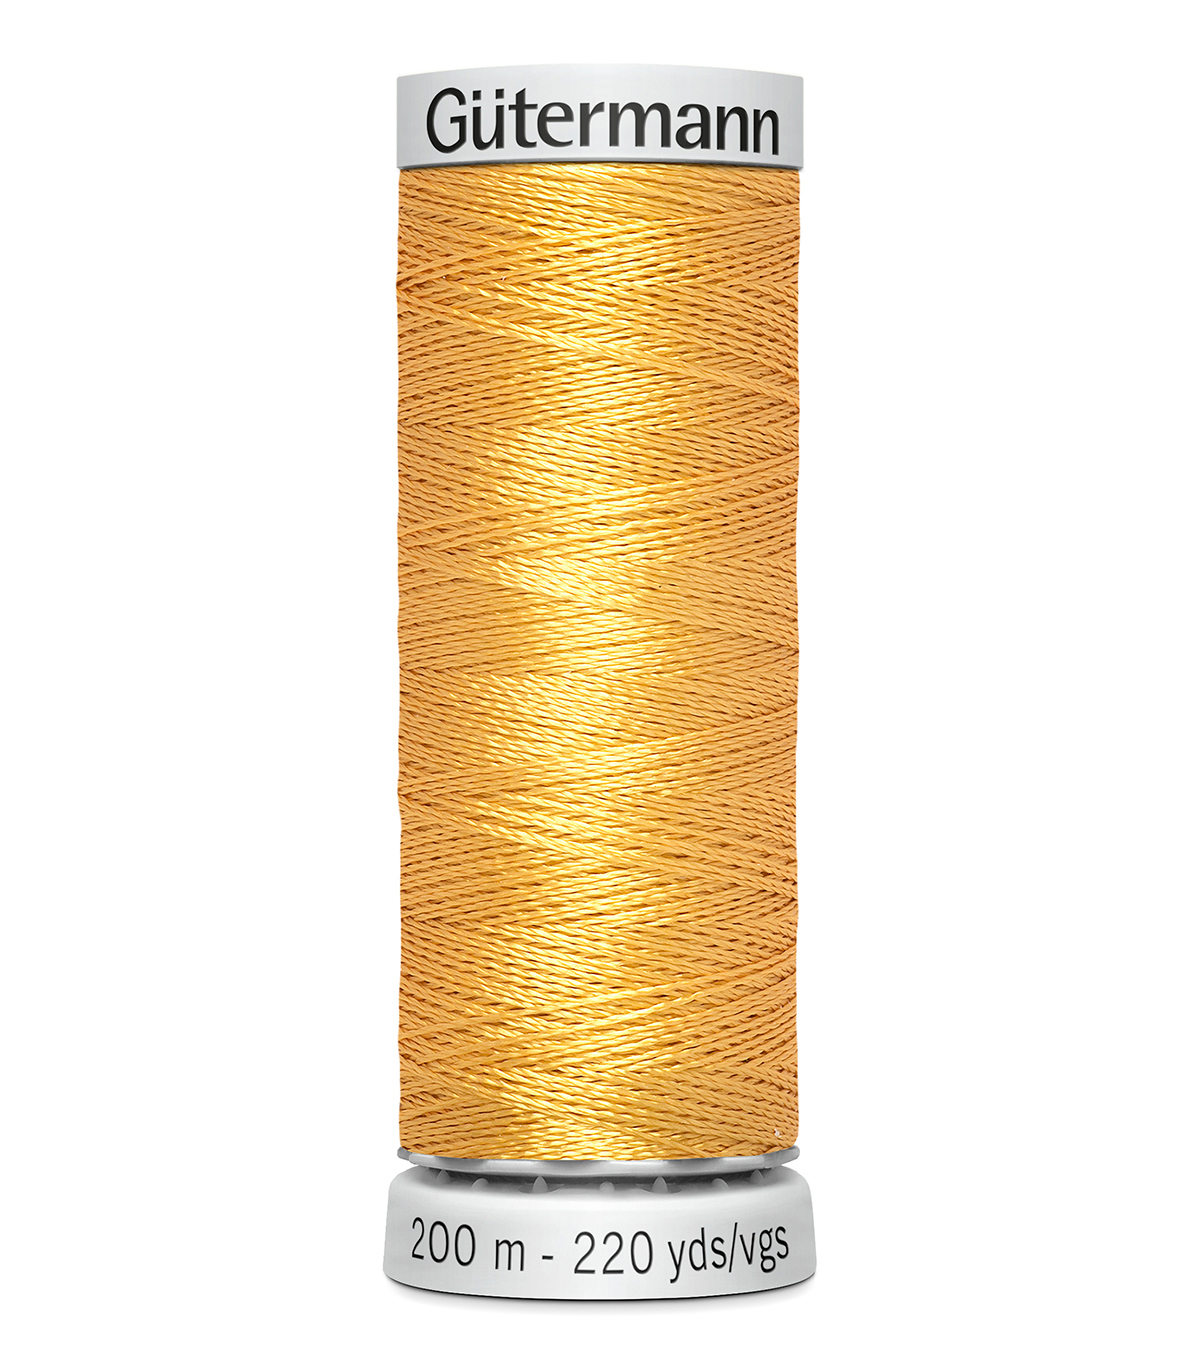 Gutermann 200M Dekor Thread